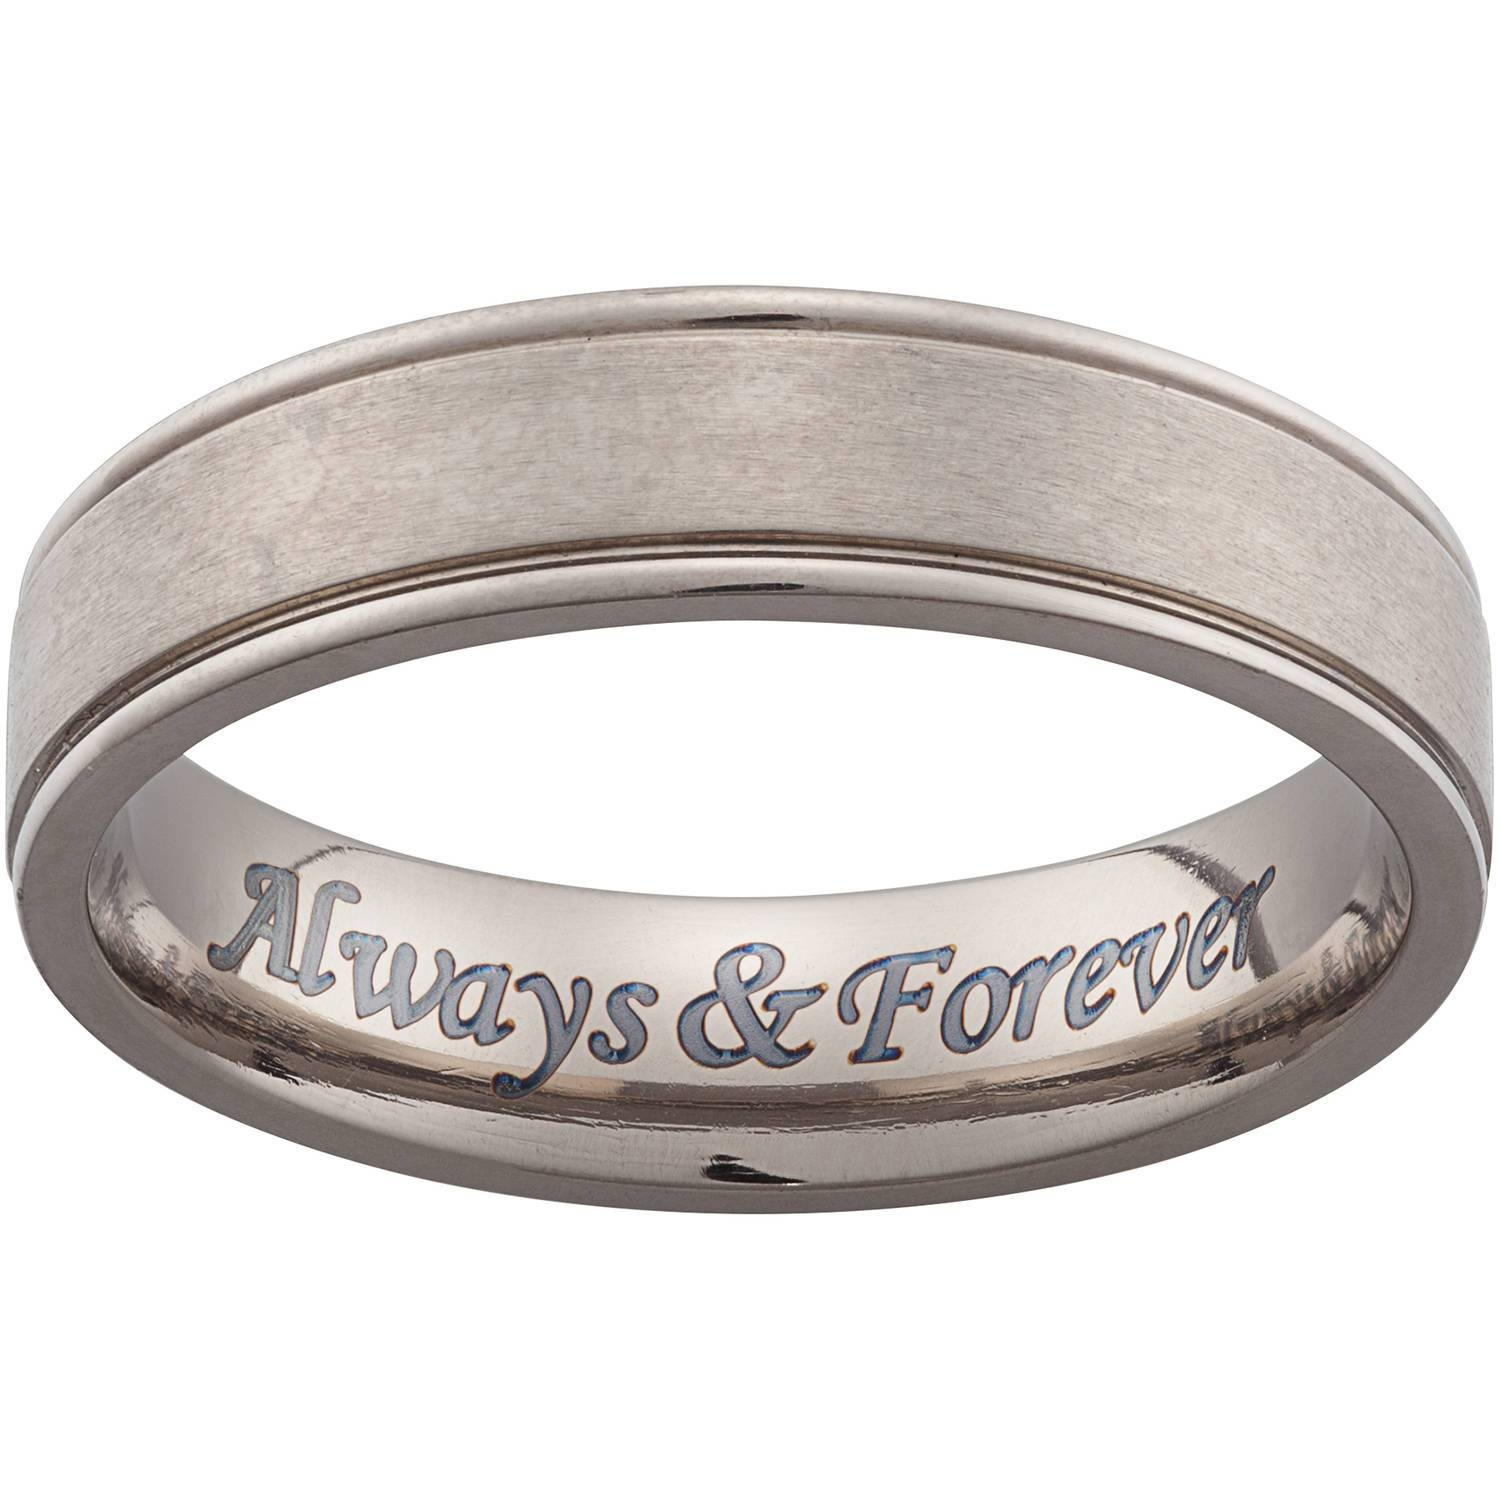 Personalized Stainless Steel Engraved Wedding Band – Walmart In Wedding Bands At Walmart (View 8 of 15)